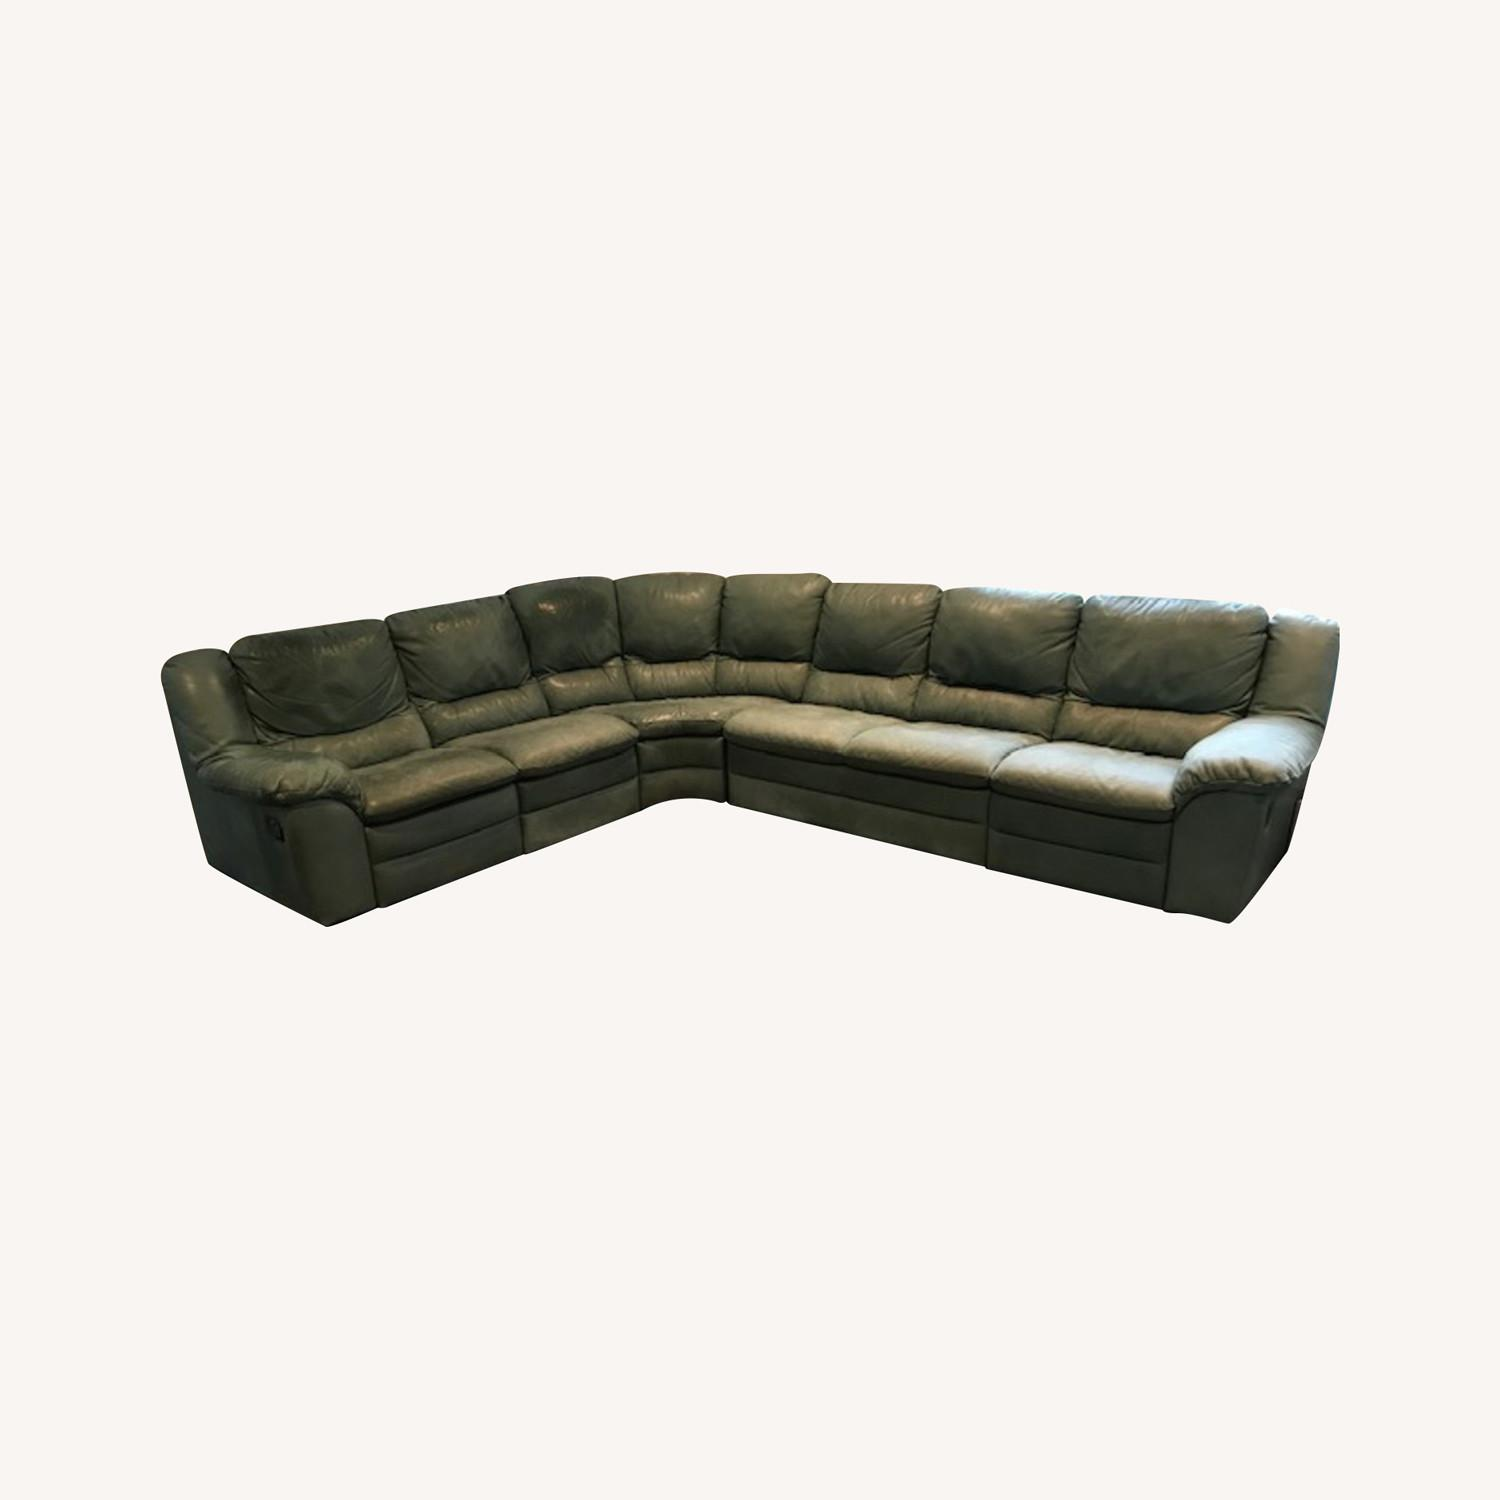 Natuzzi Teal Colored Sectional Couch - image-0